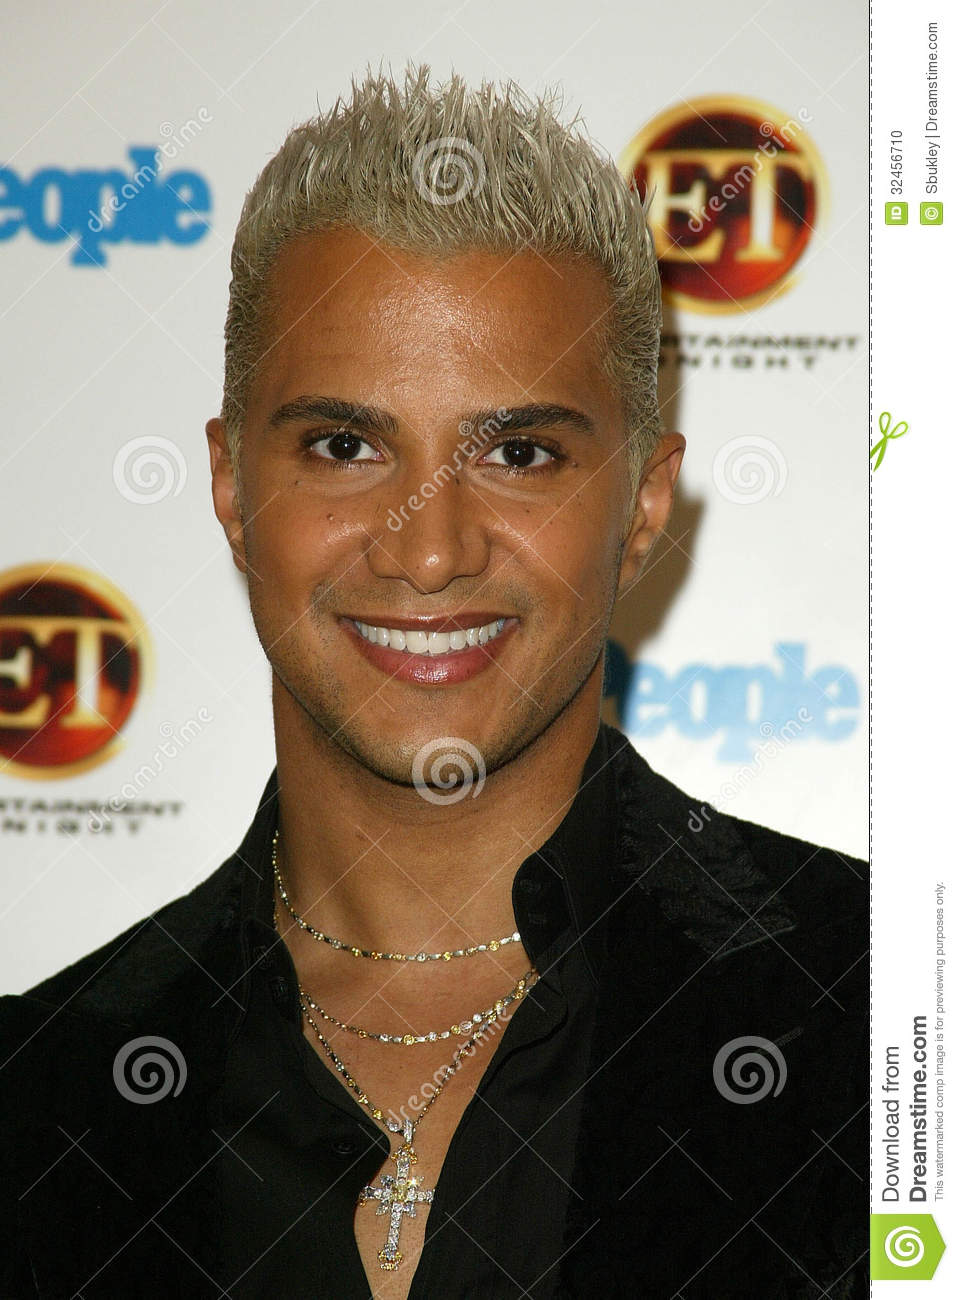 jay manuel instagramjay manuel tumblr, jay manuel youtube, jay manuel lipstick, jay manuel and tyra banks, jay manuel instagram, jay manuel beauty, jay manuel 2016, jay manuel make up, jay manuel, jay manuel 2015, jay manuel wife patricia kent, jay manuel hsn, jay manuel app, jay manuel makeup artist, jay manuel young, jay manuel net worth, jay manuel foundation, jay manuel beauty products, jay manuel biography